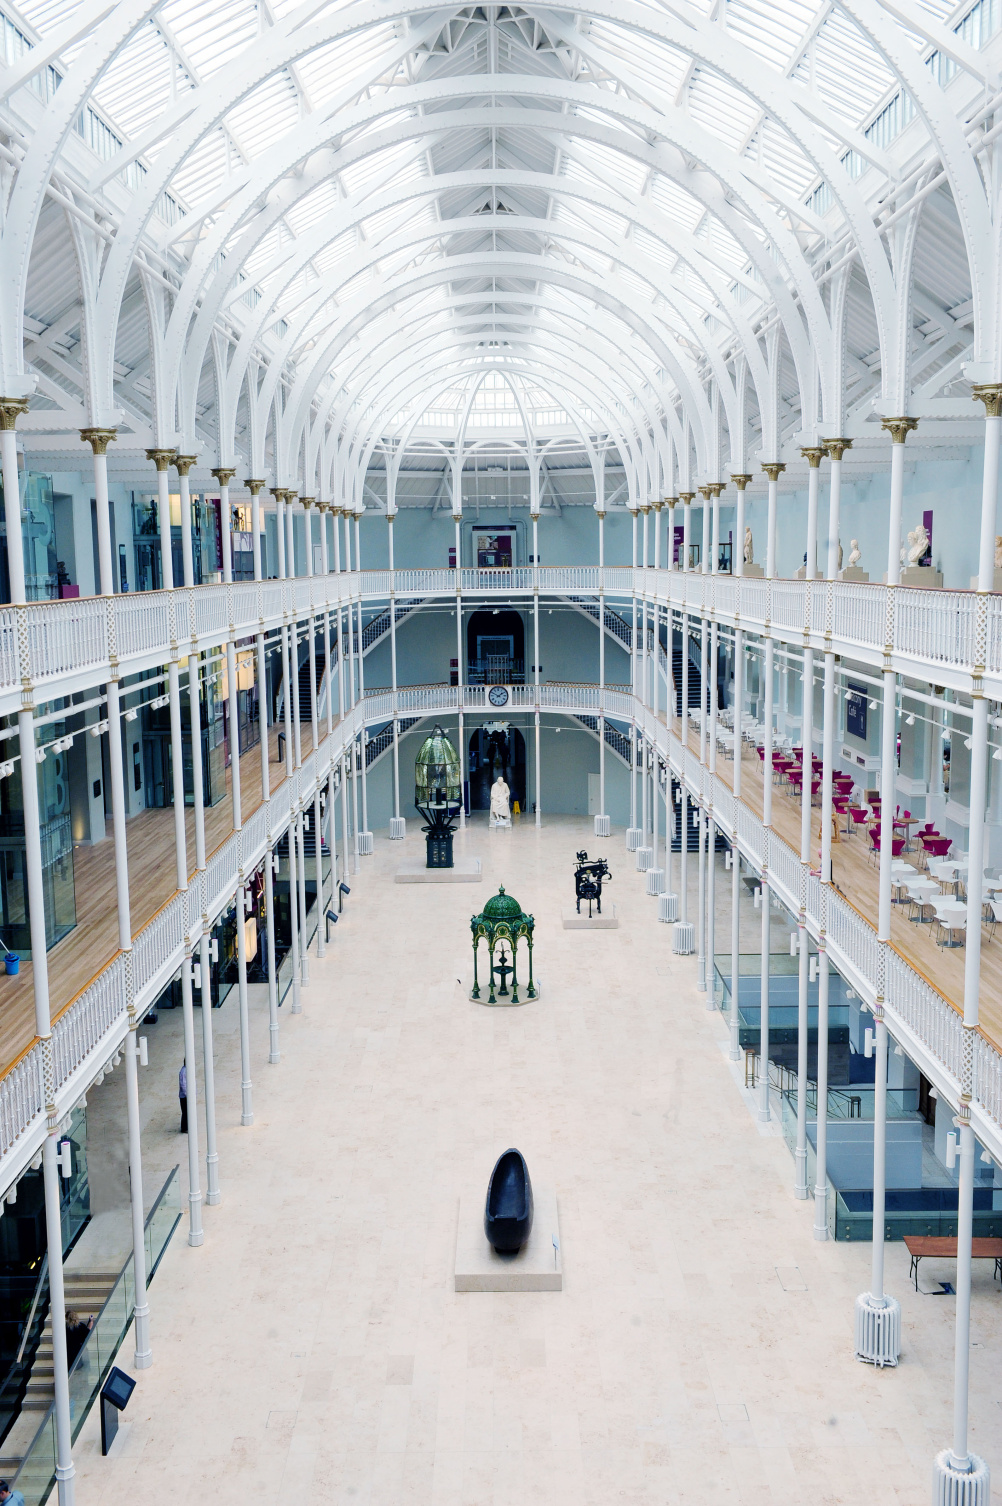 Grand Gallery National Museum of Scotland